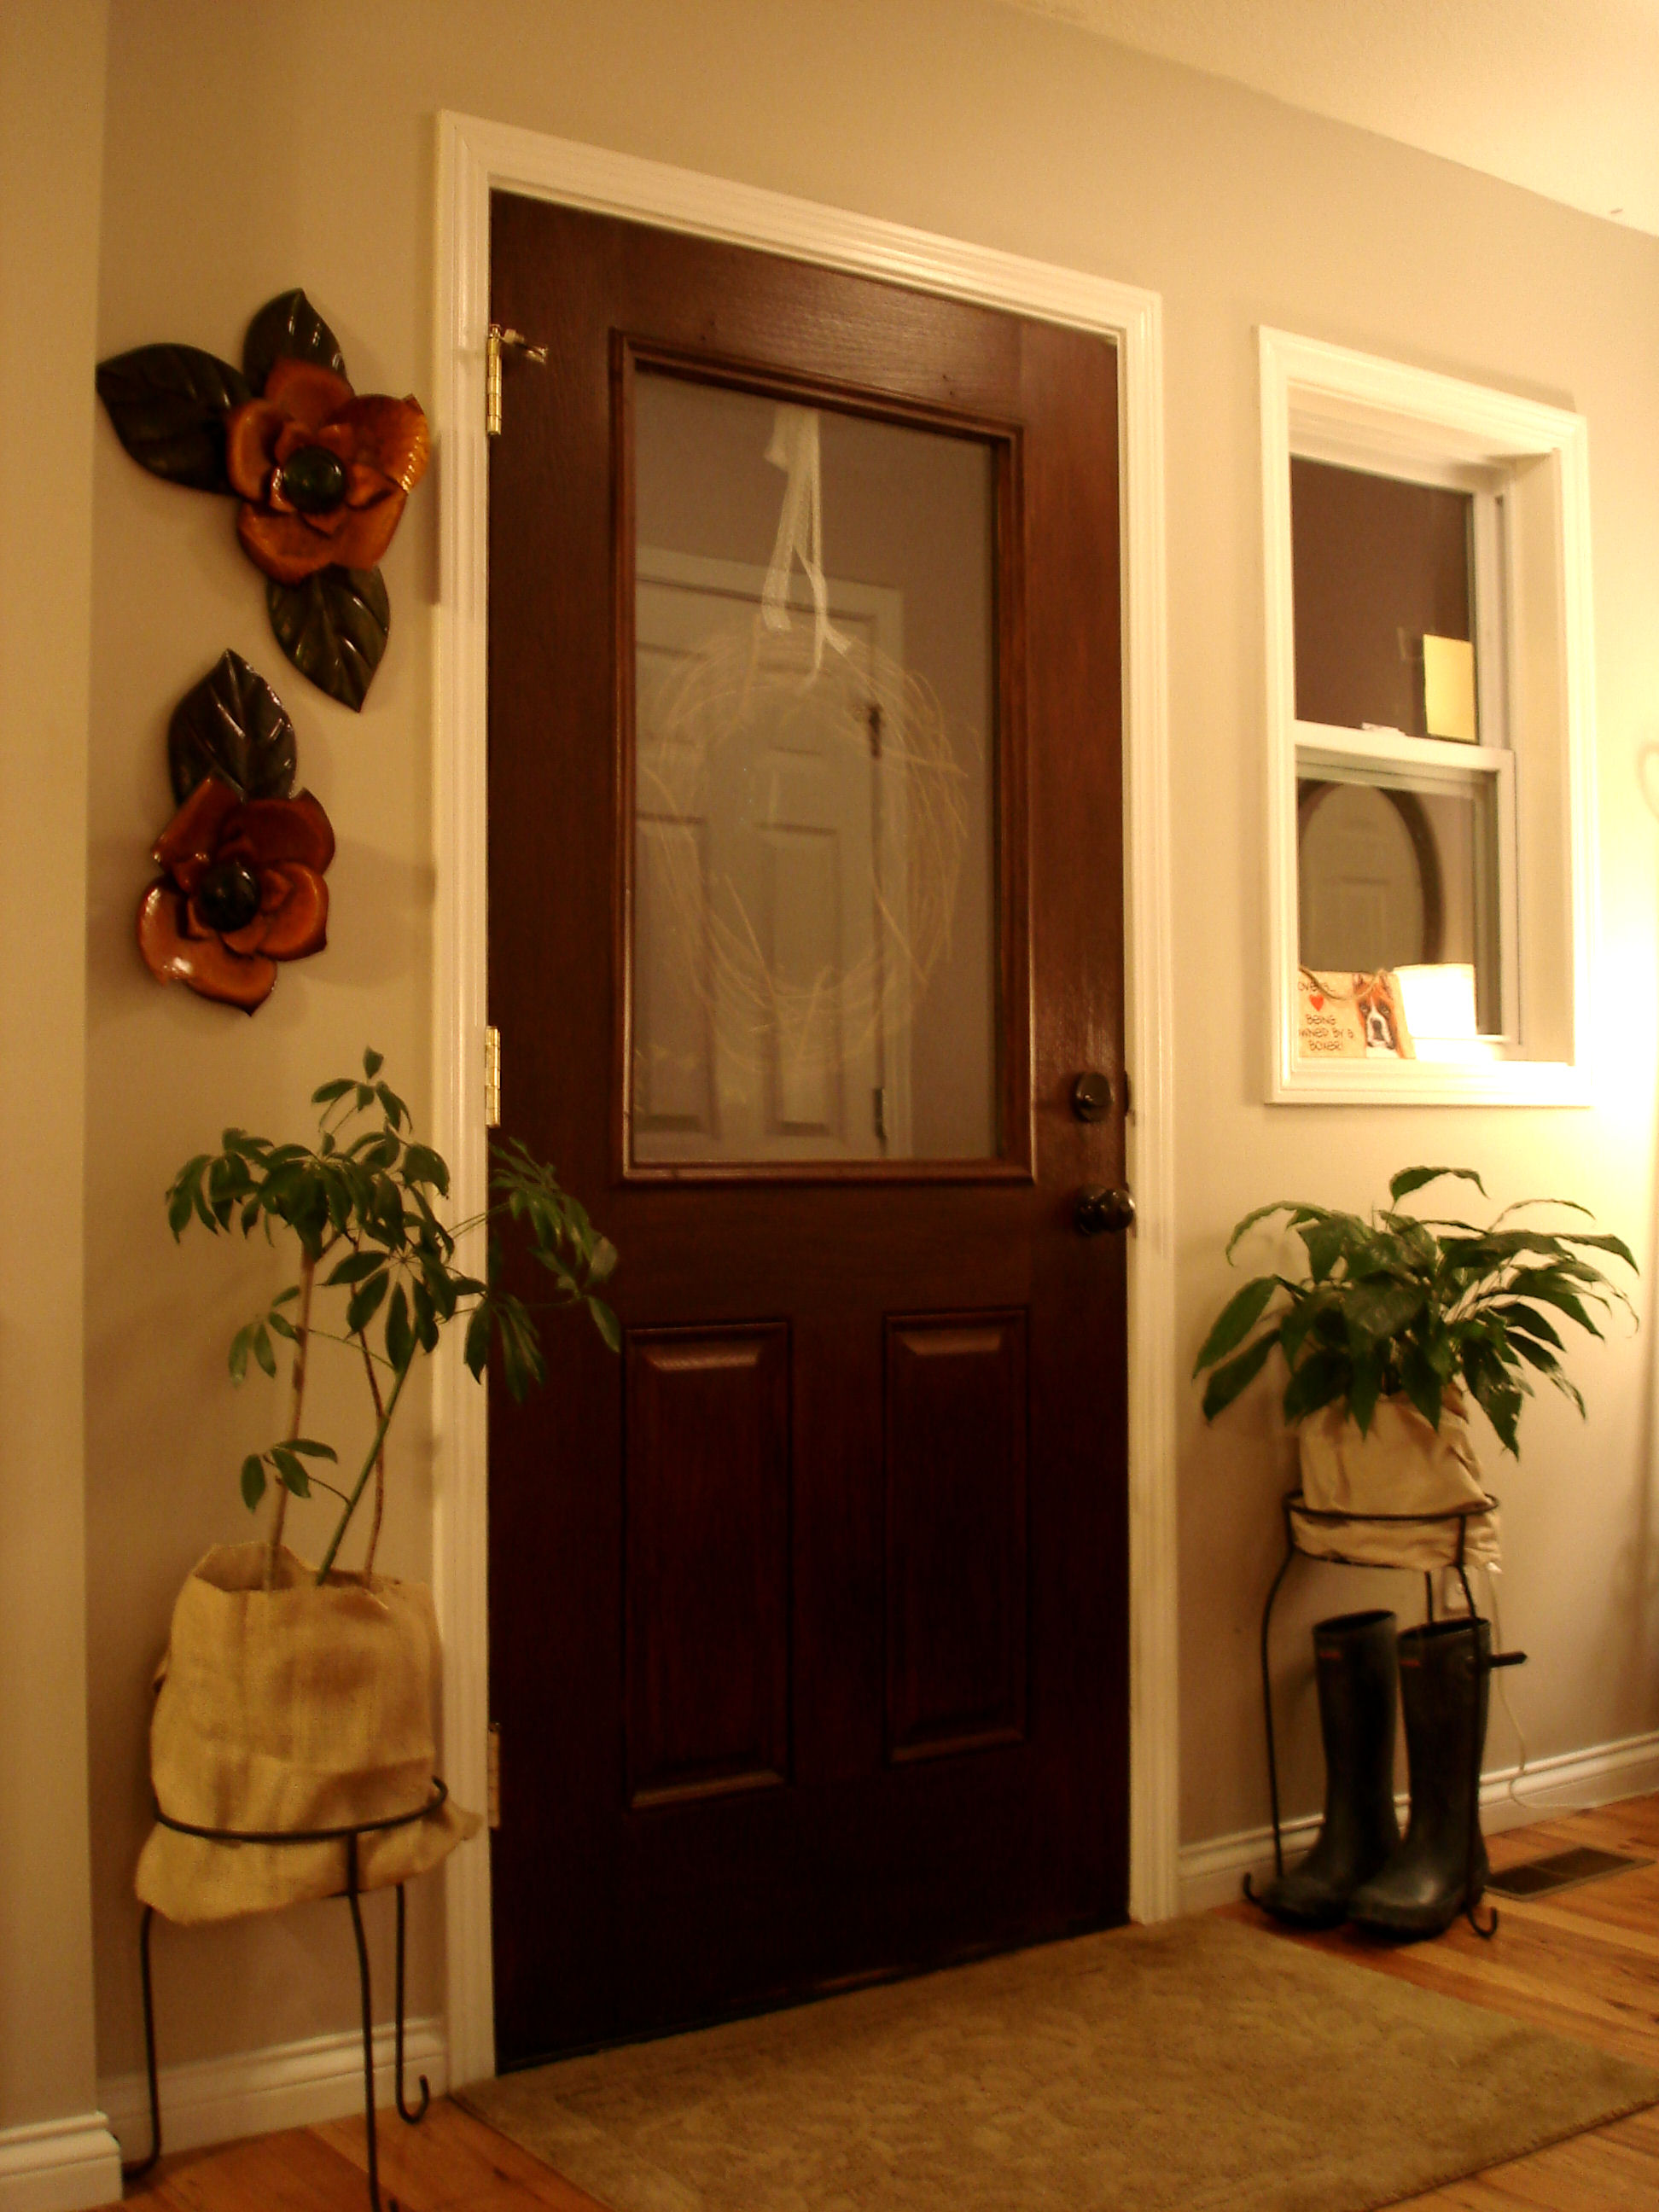 & Front Door- Big Reveal!